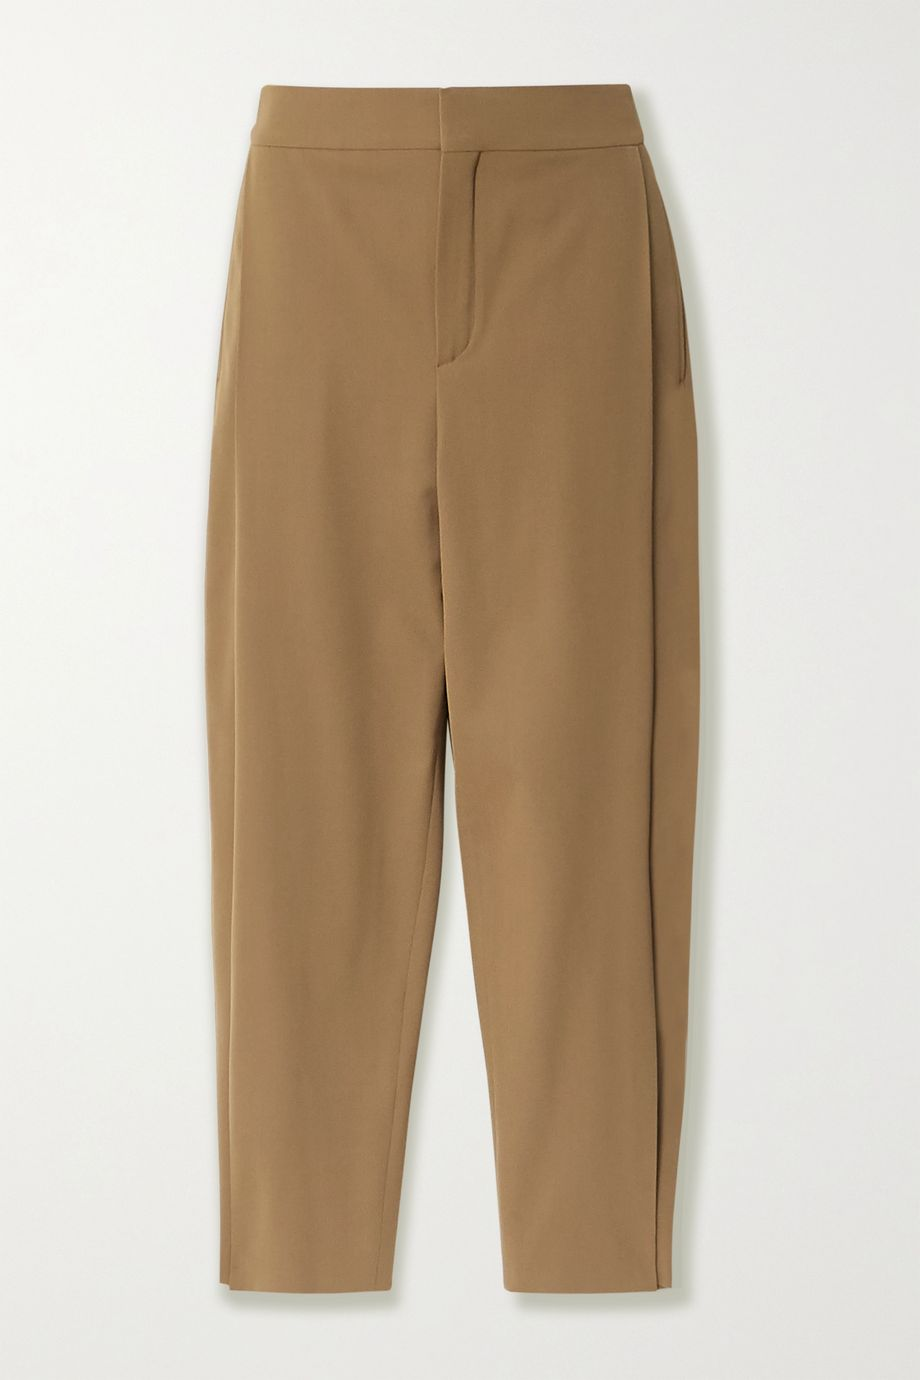 Chloé Cropped stretch-twill tapered pants